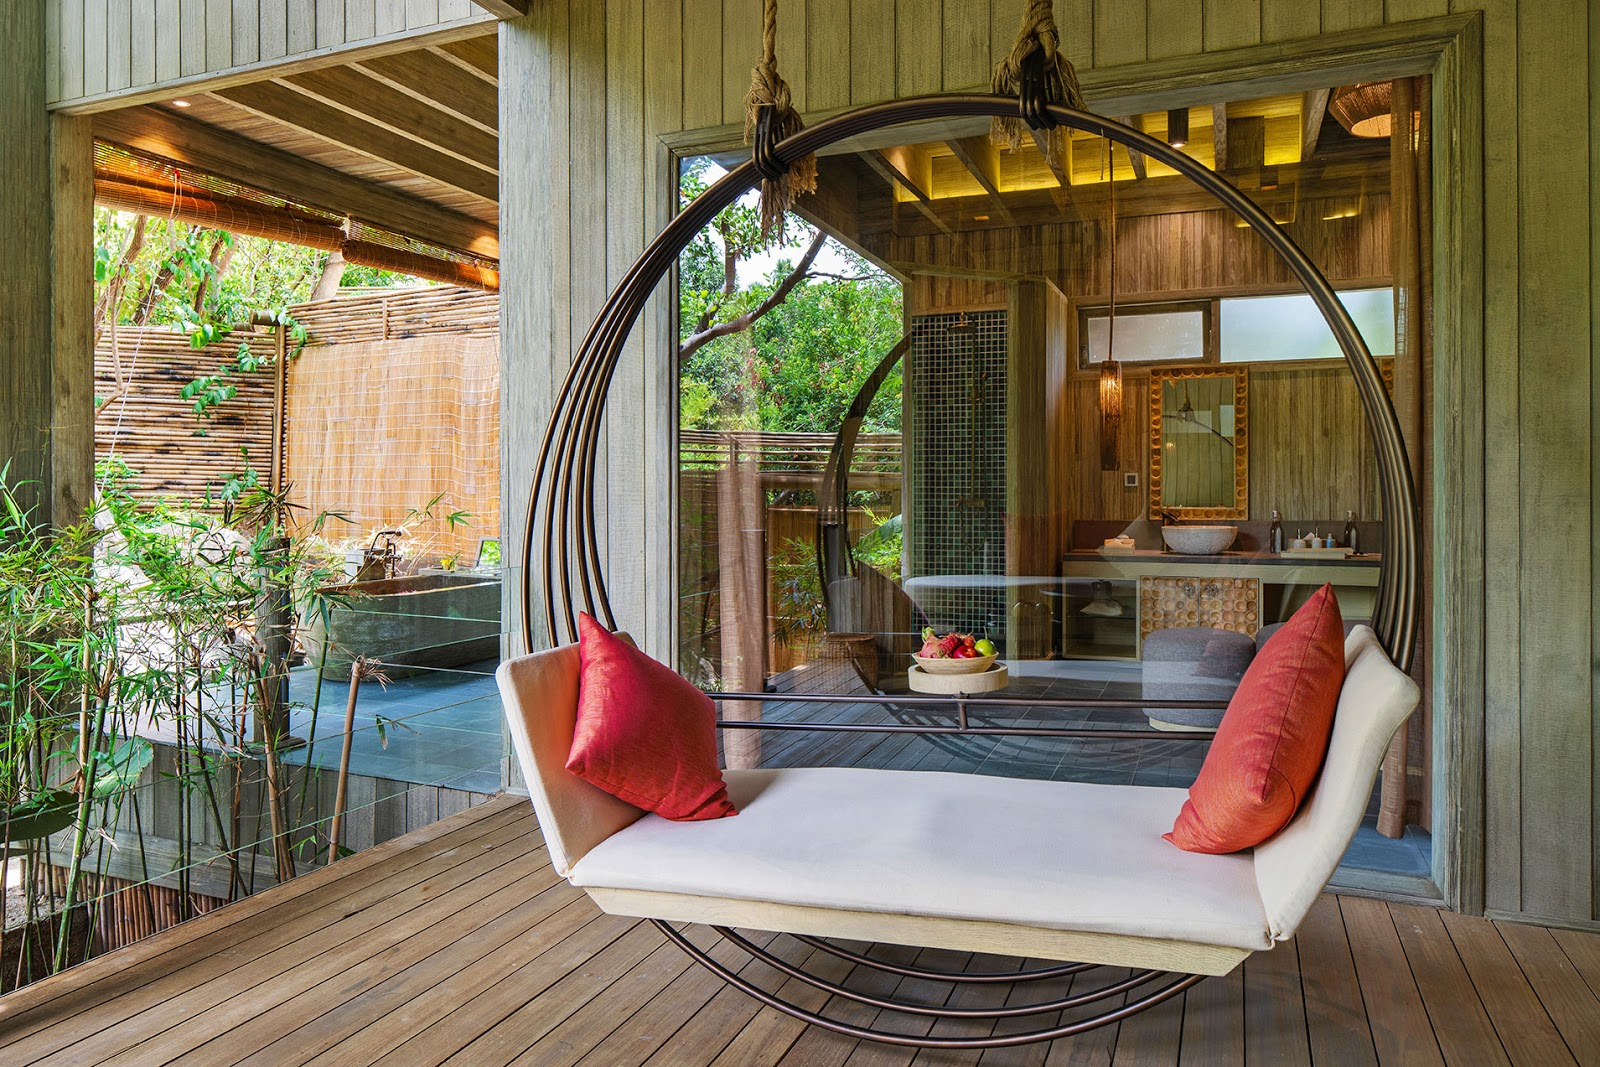 a resort bedroom made from wooden finishes